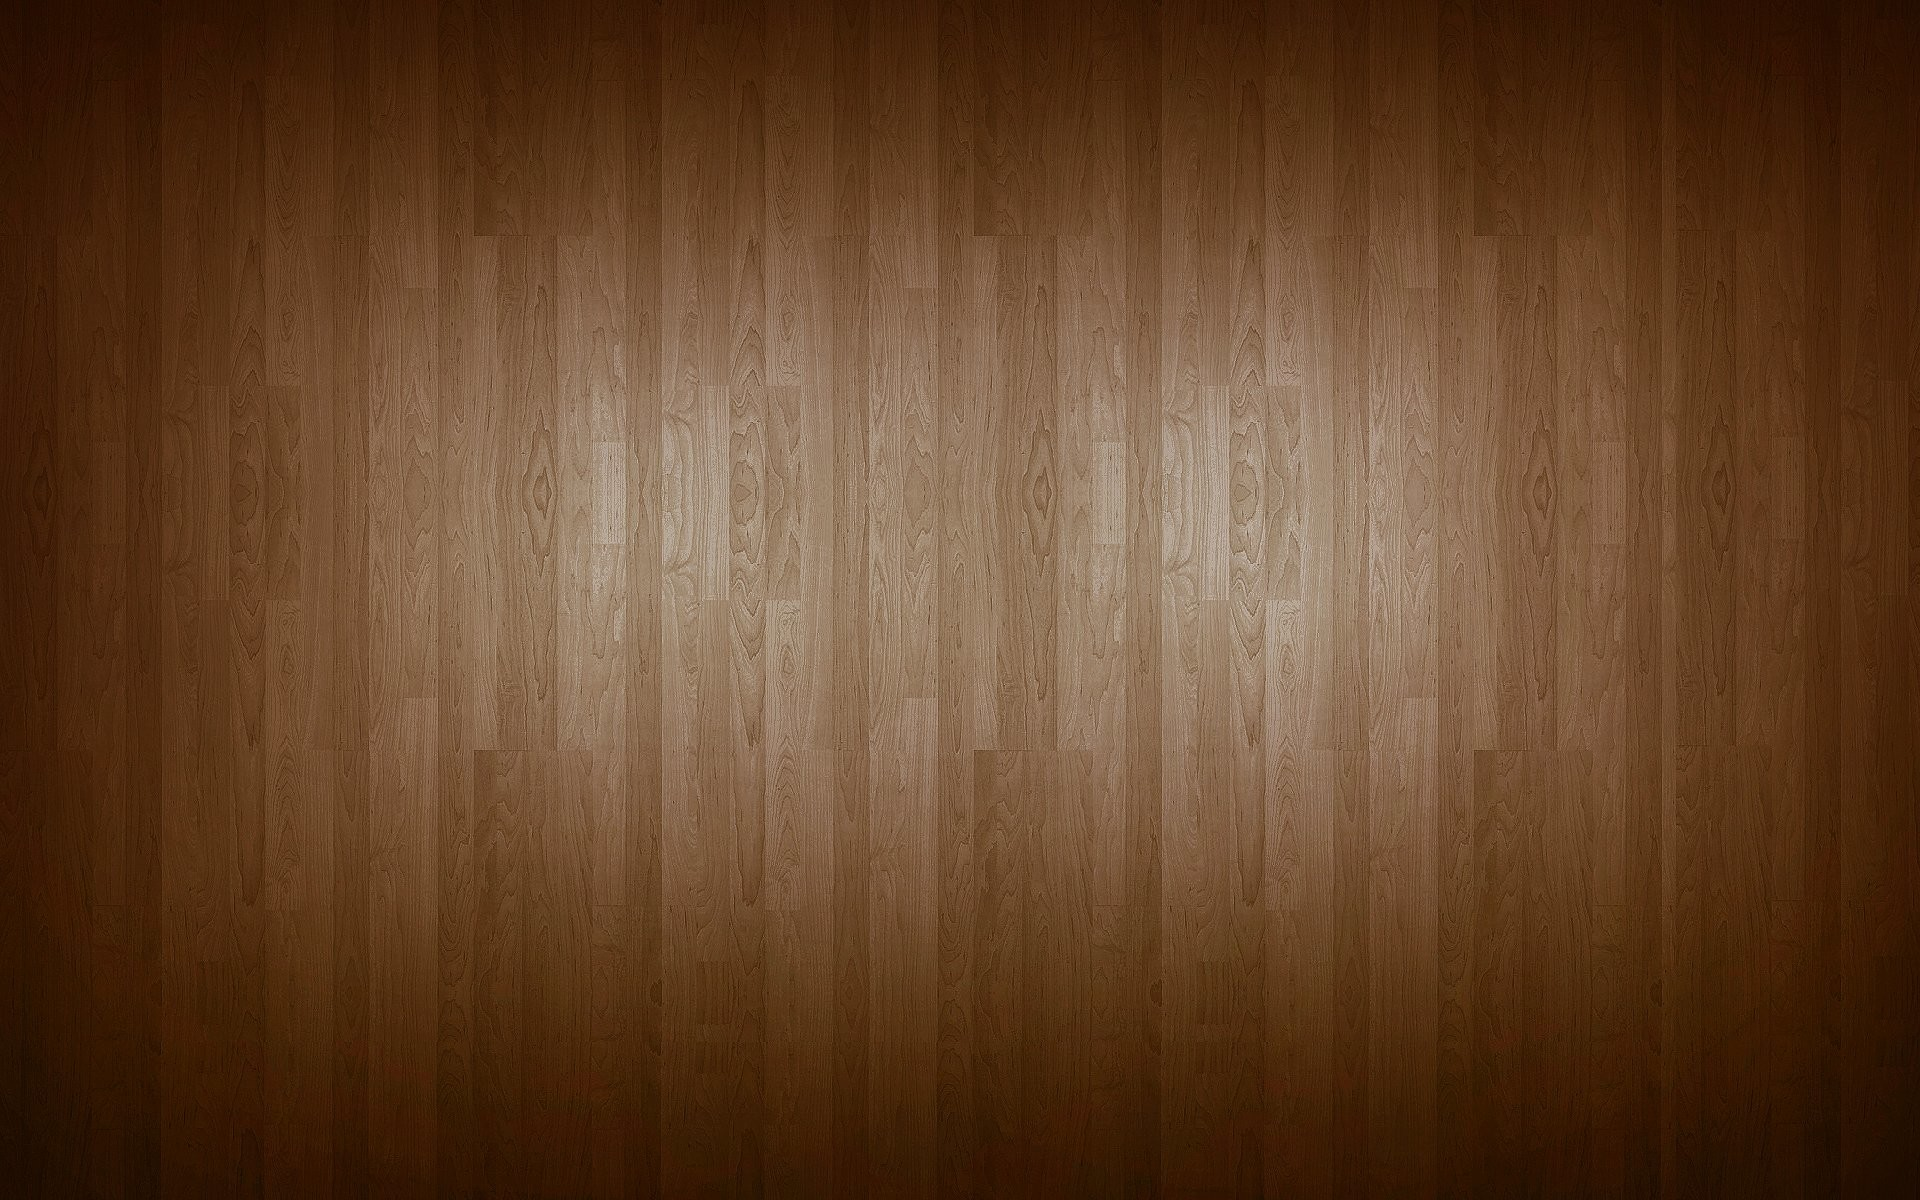 1920x1200 High Resolution Wood Wallpaper Full Size SiWallpaperHD